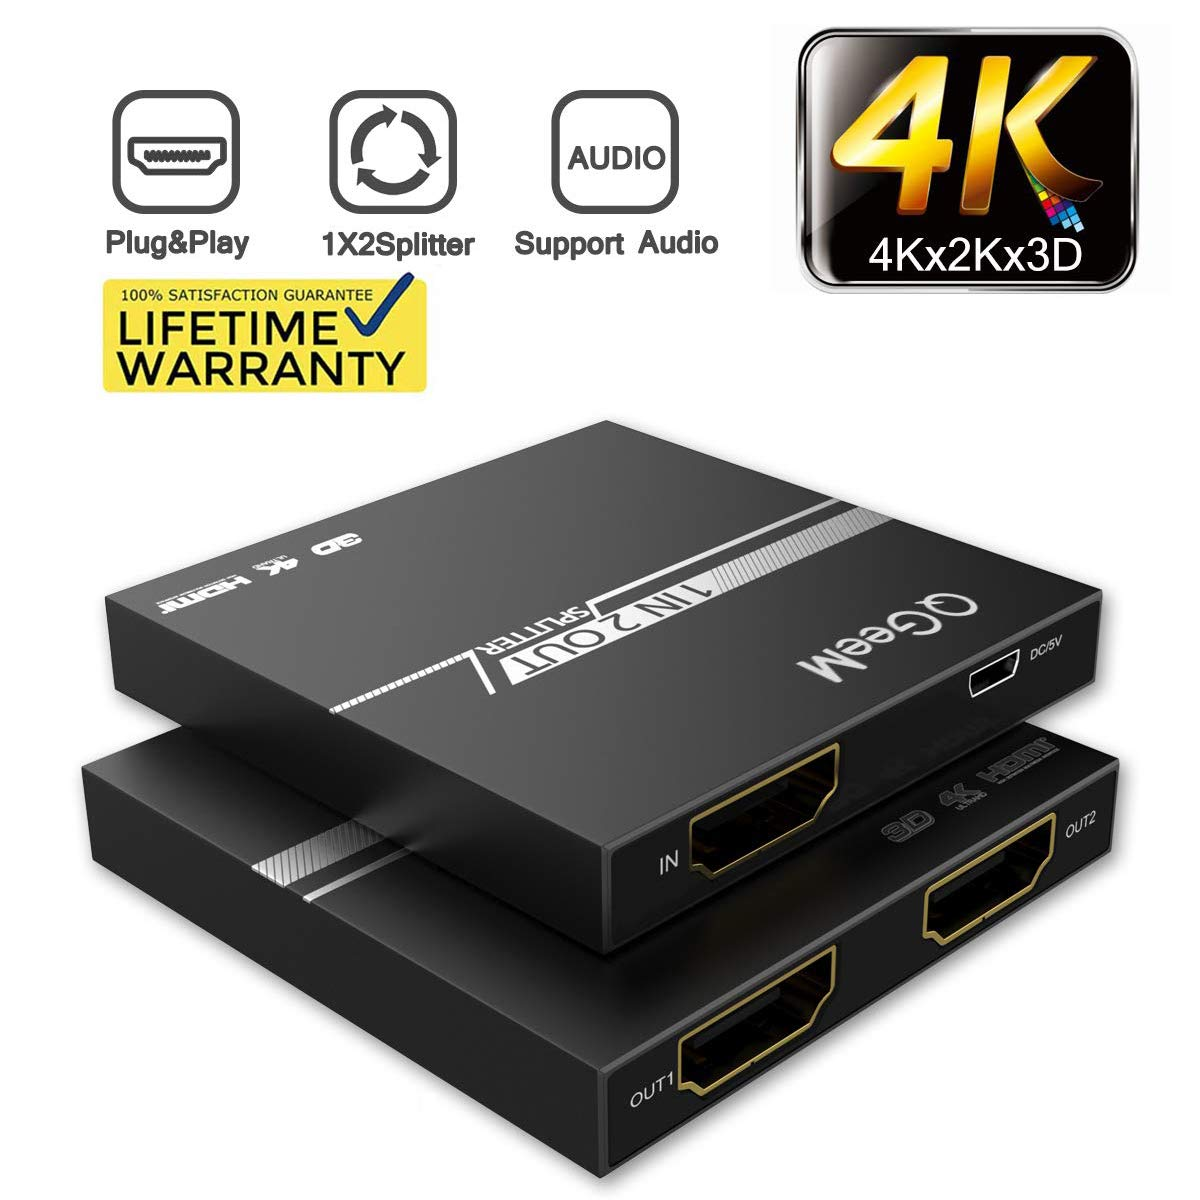 2019 Updated HDMI Splitter Ultra Thin 4K 1 in 2 Out, QGeeM, 1x2 HDMI Splitter for PS 4、Xbox、Apple Tv、Stb、Blu-Ray DVD Players and More(Vk-102S)